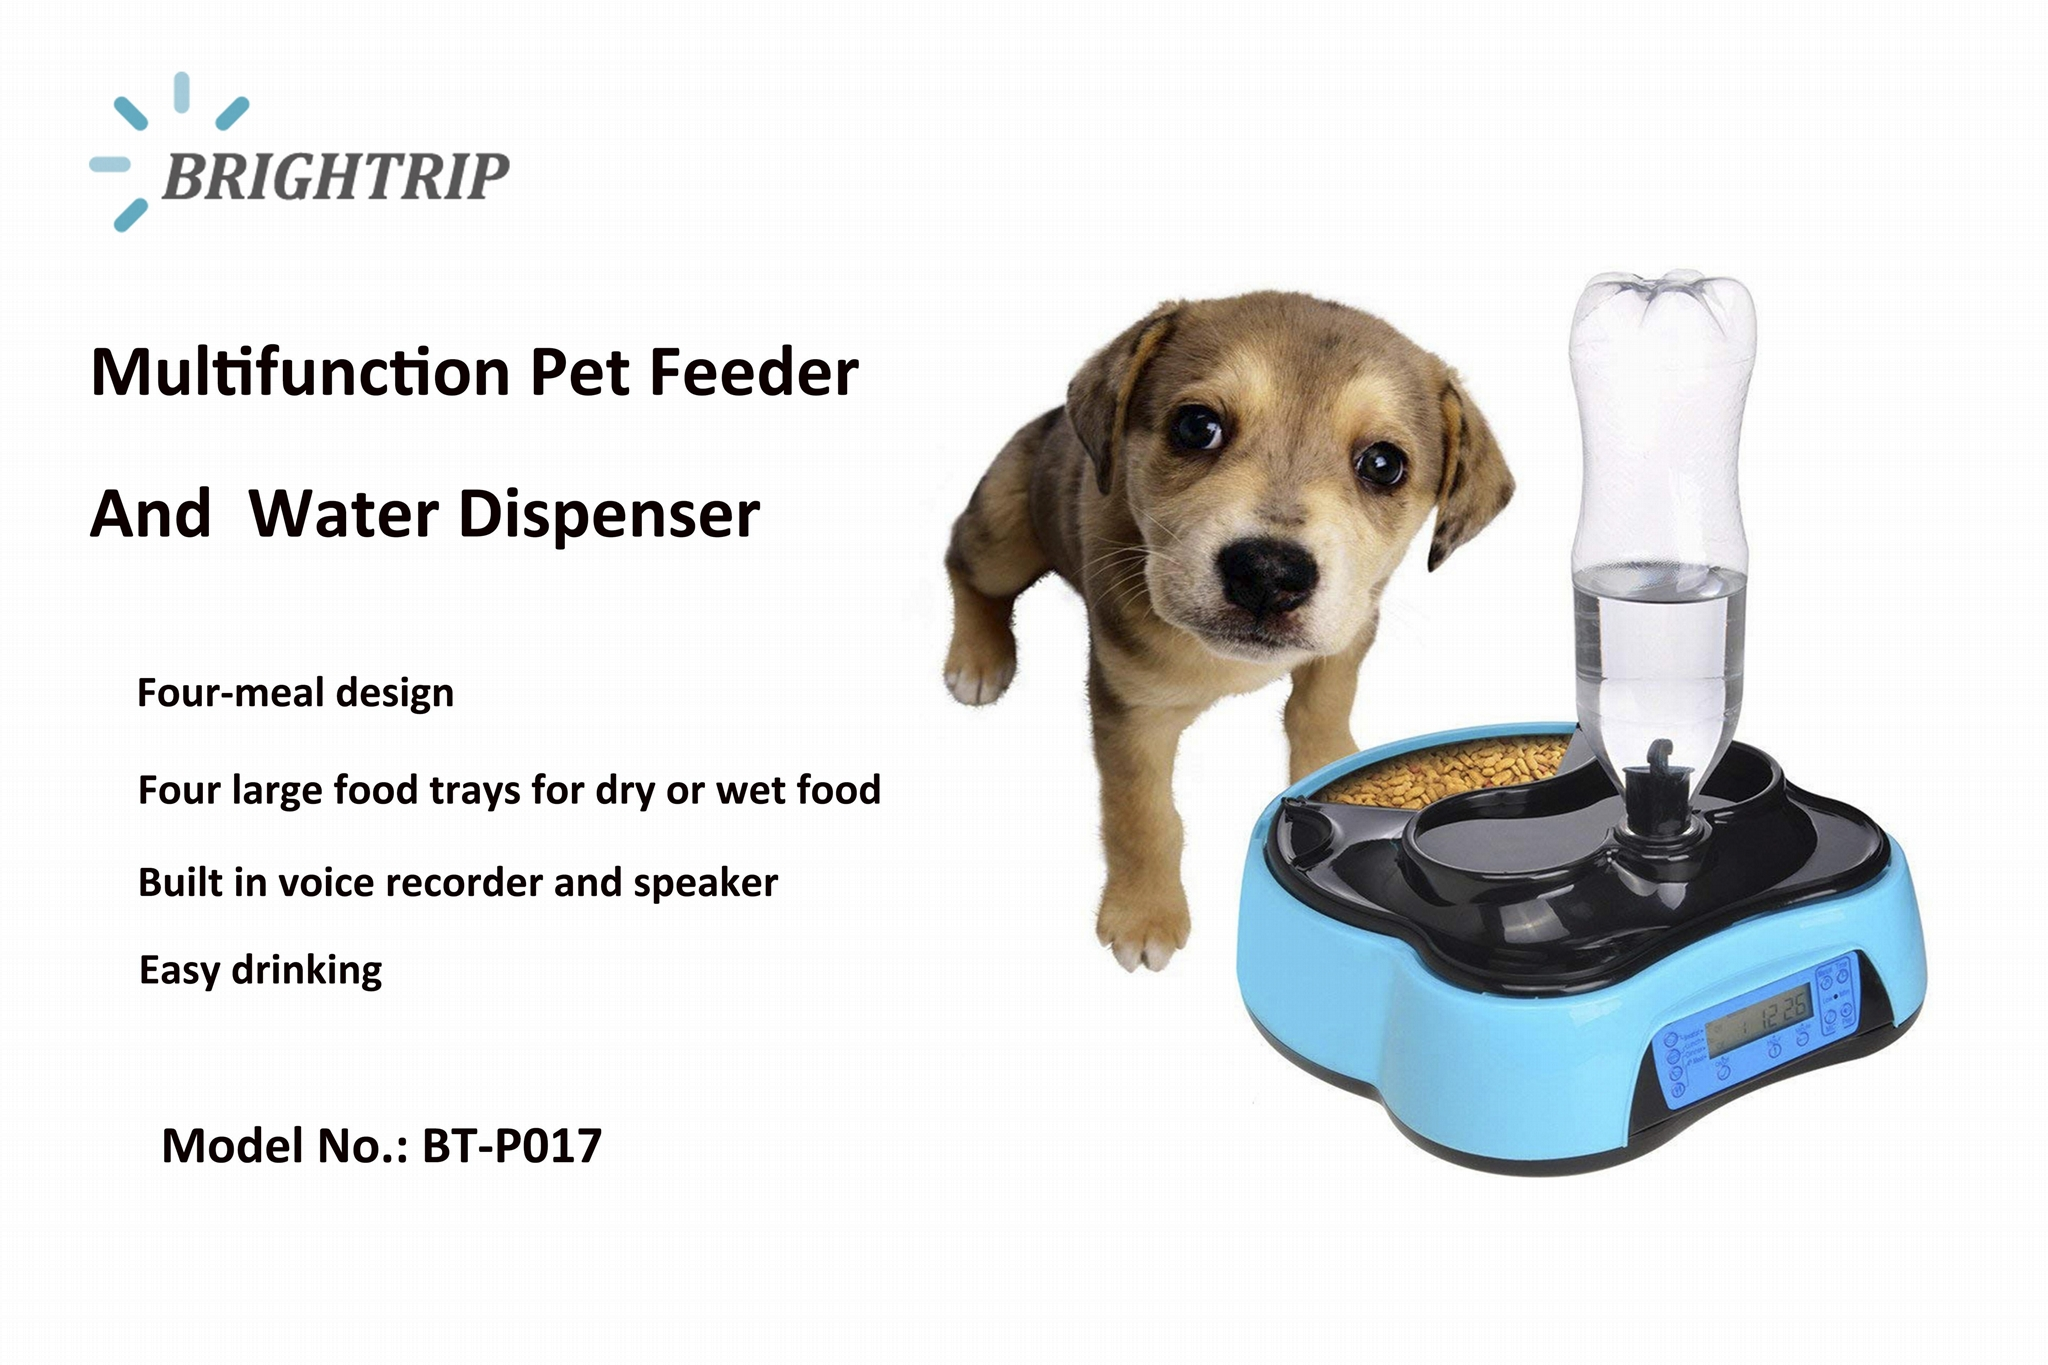 Multifunction Automatic Feeder Pet Food and Water Dispenser 1